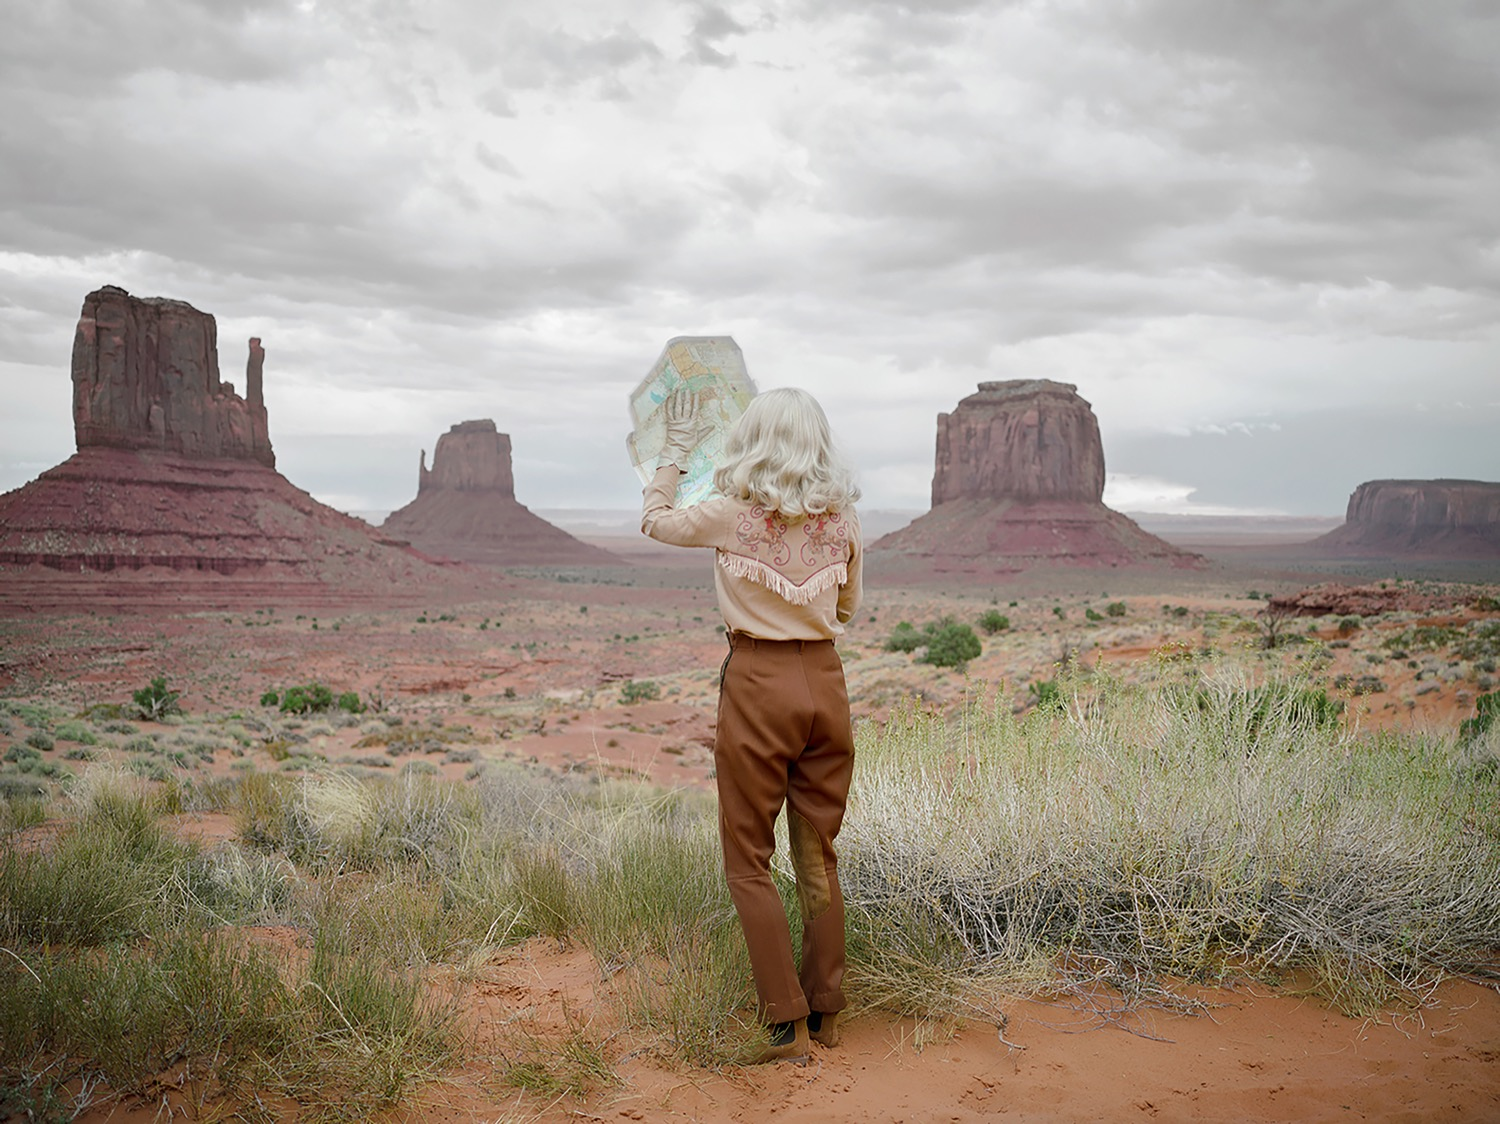 ©Anja Niemi, The Fictional Roadtrip, 2018, courtesy of Galerie XII